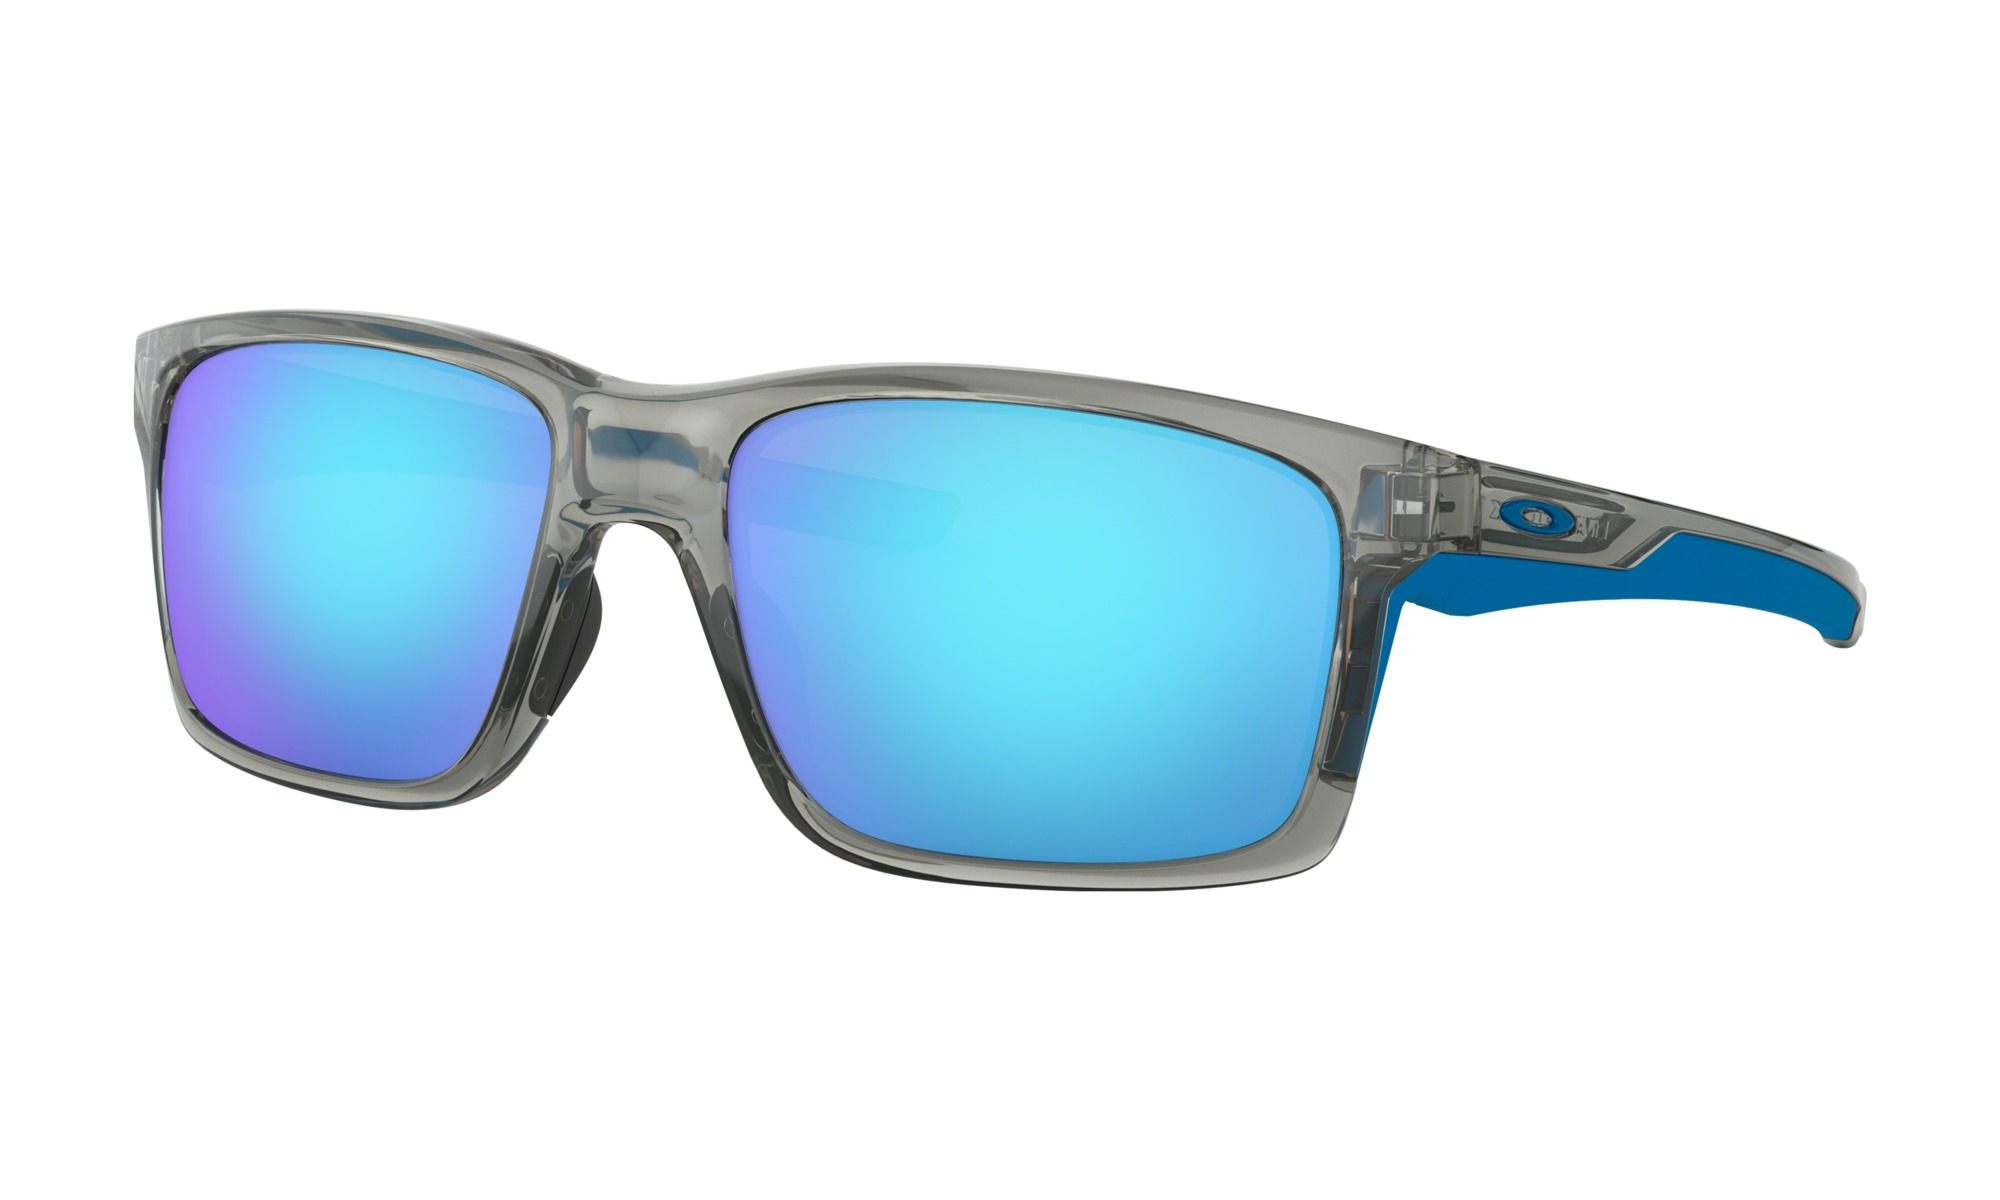 1bd94bcc645 Oakley Mainlink - Grey Ink - Sapphire Iridium - Bike Shop ...